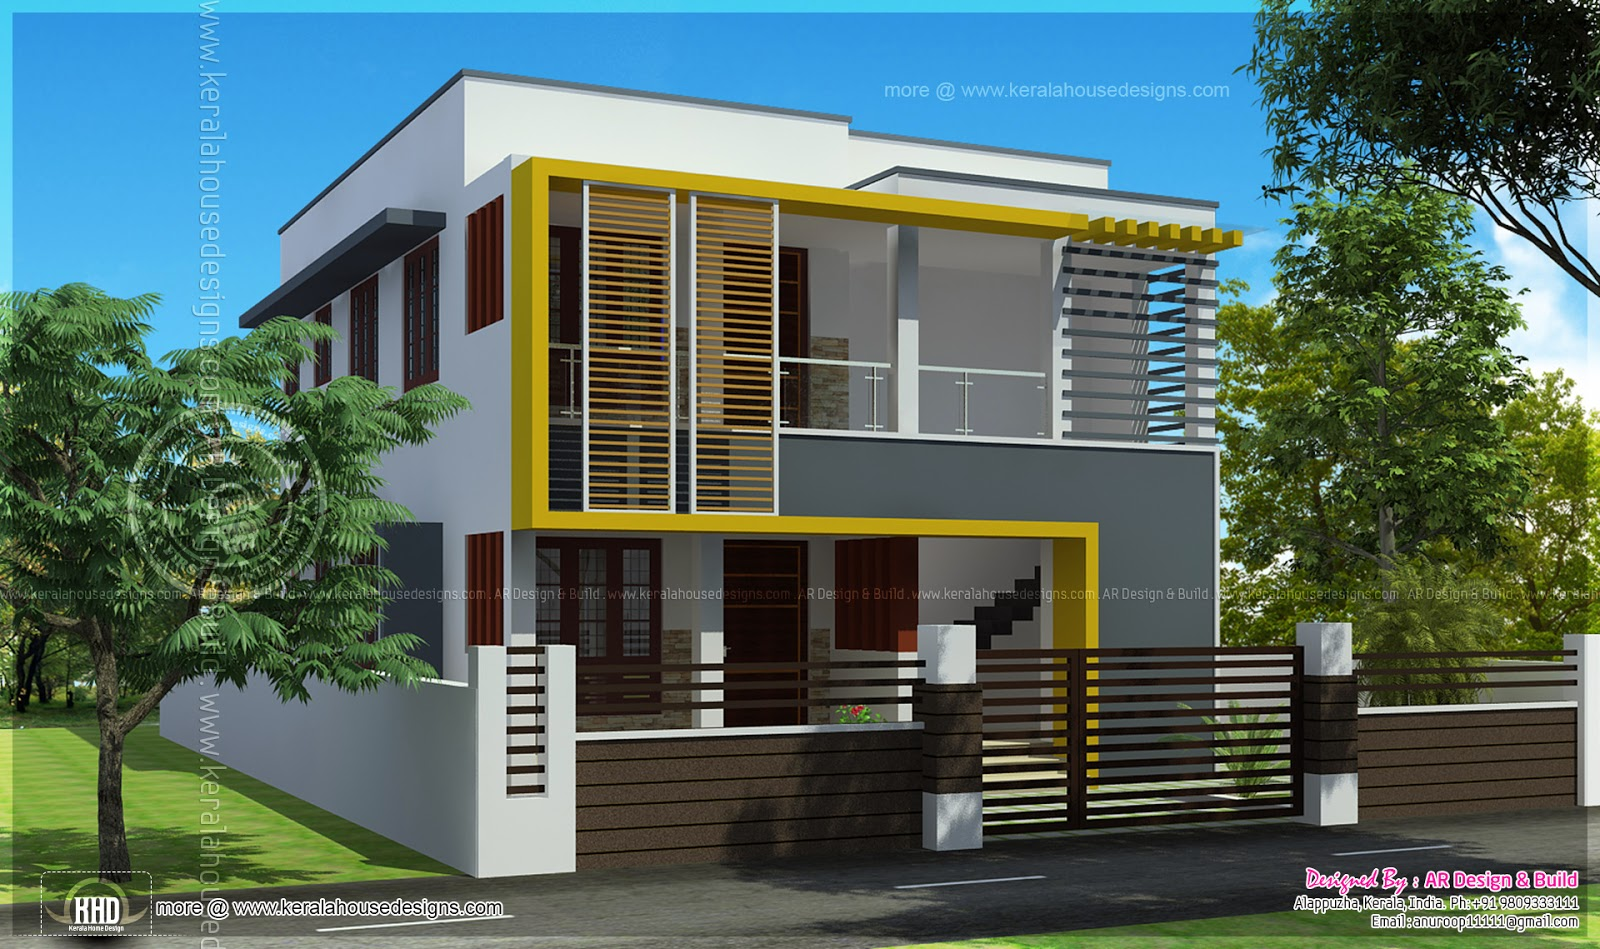 Duplex house in Kerala. Duplex house elevation 1000 sq feet each   Kerala home design and